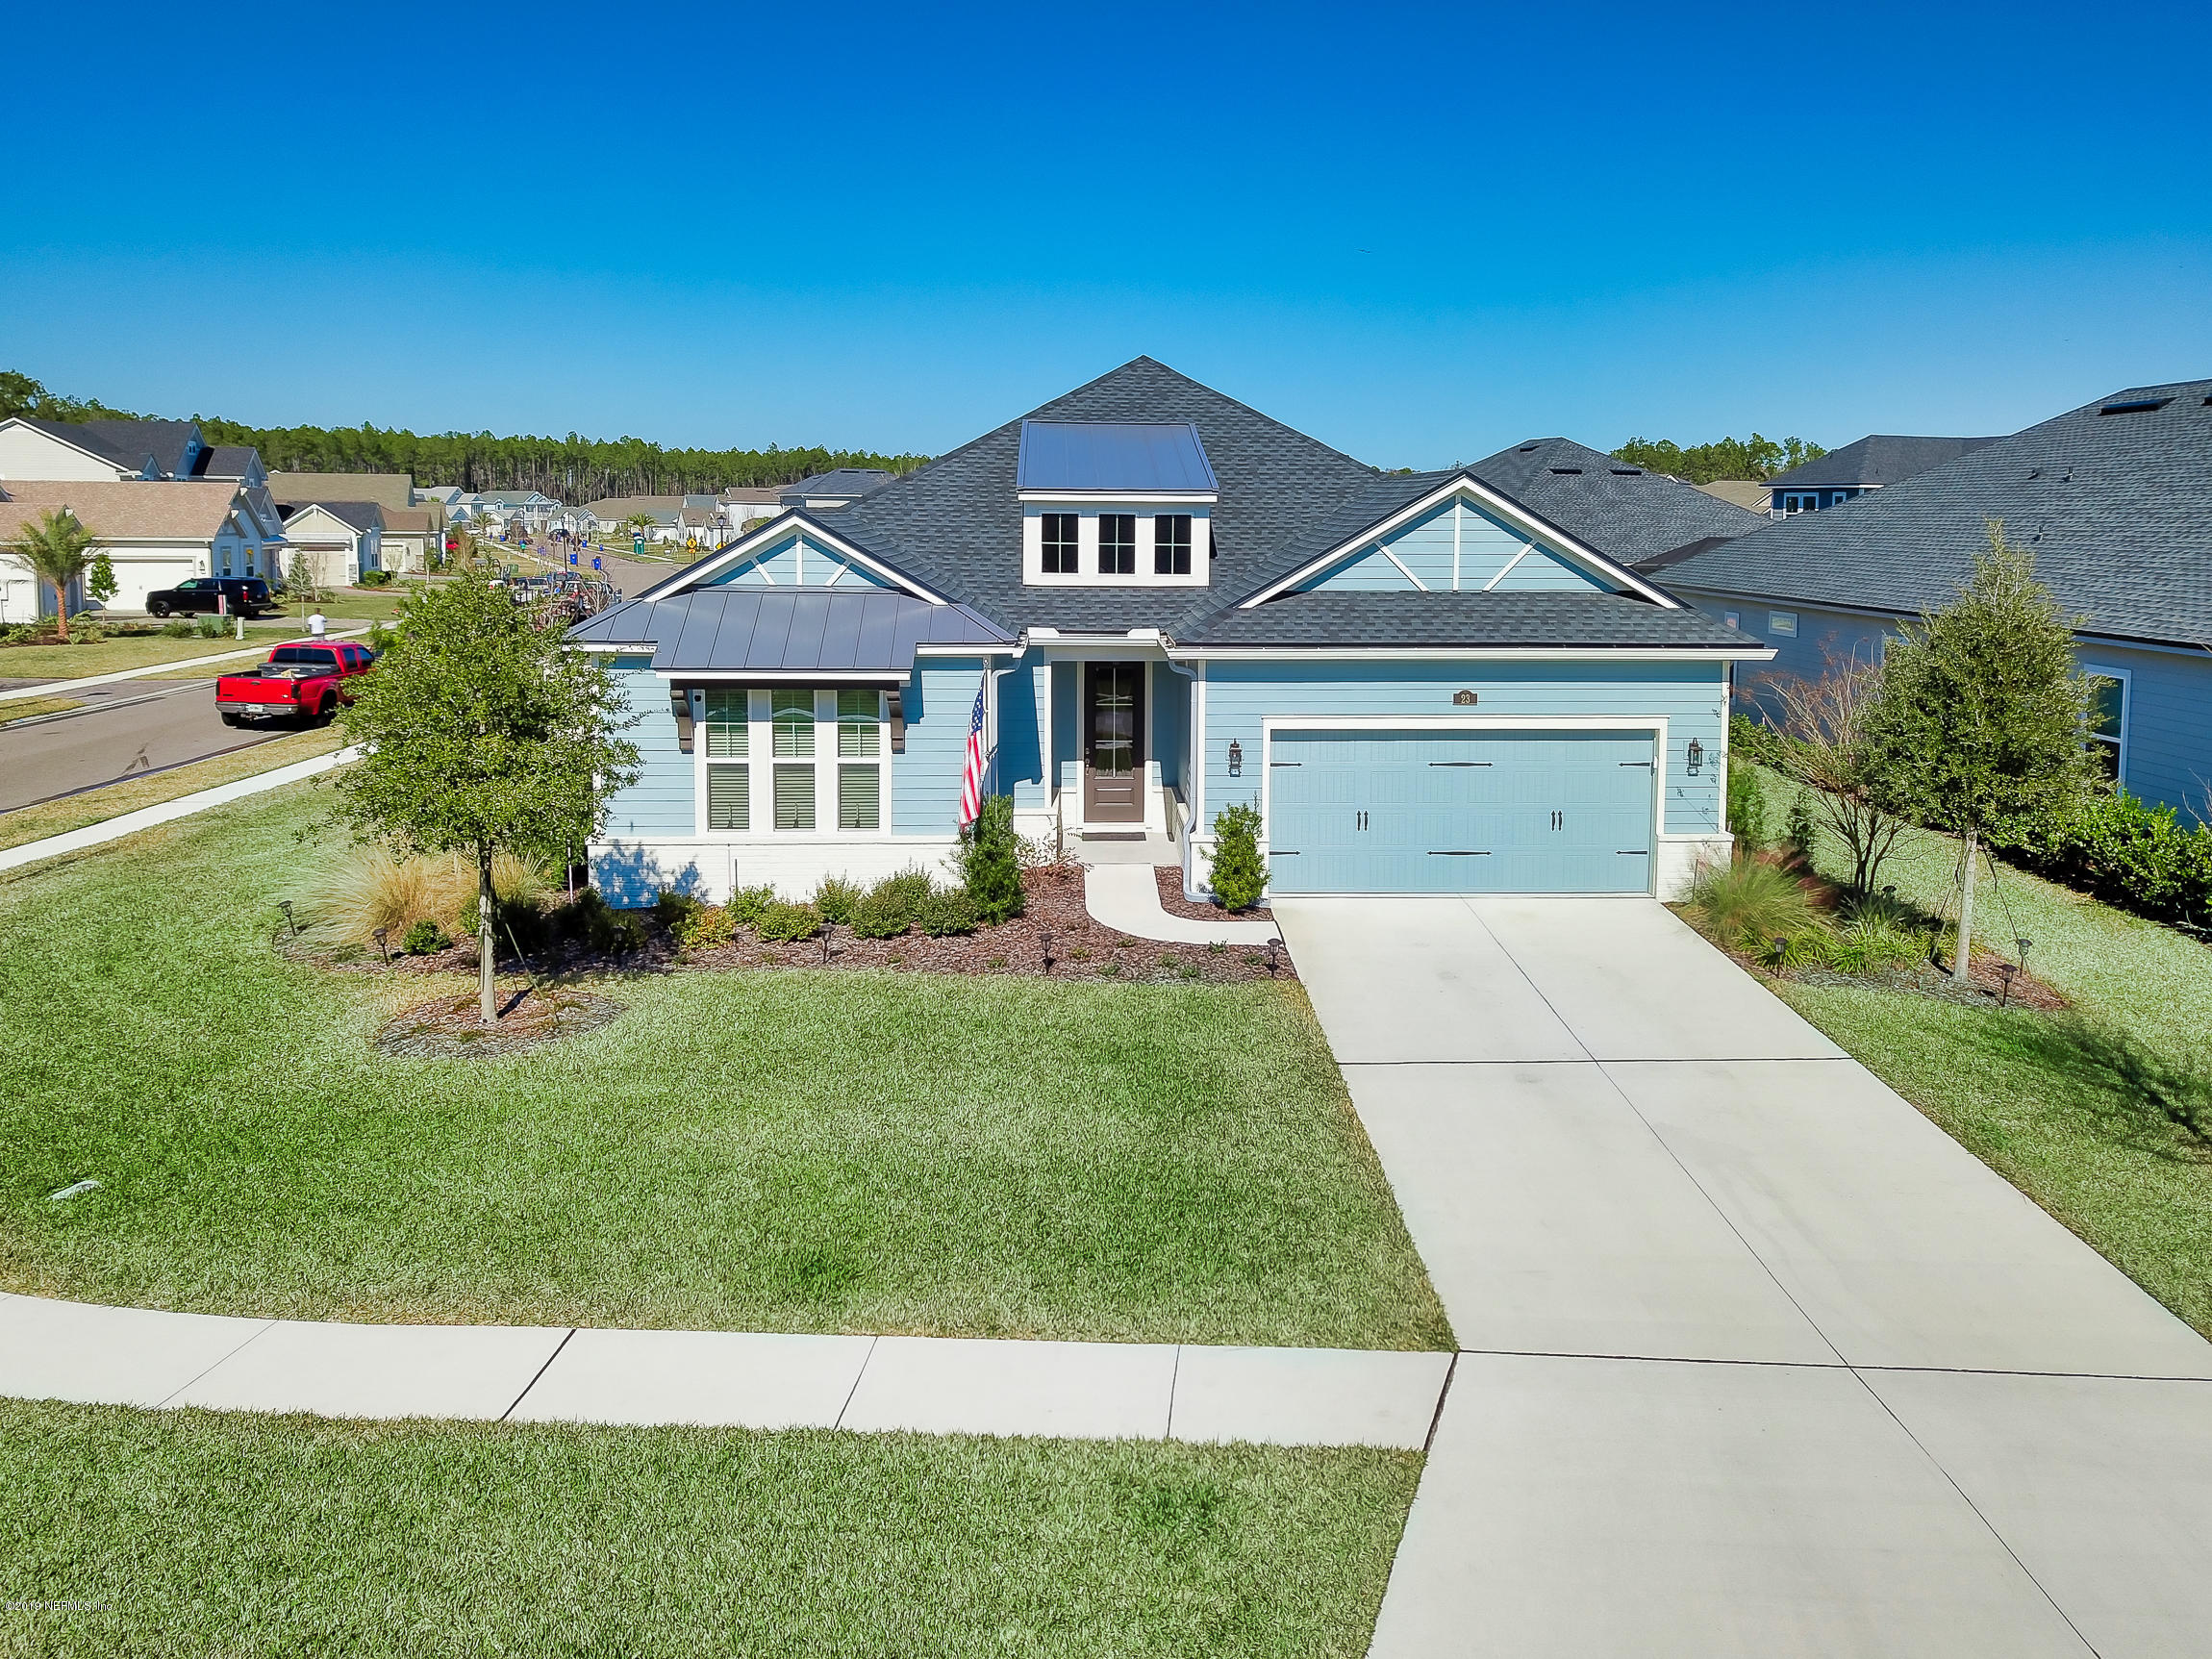 23 LAZY CREST, PONTE VEDRA BEACH, FLORIDA 32081, 3 Bedrooms Bedrooms, ,2 BathroomsBathrooms,Residential - single family,For sale,LAZY CREST,977018